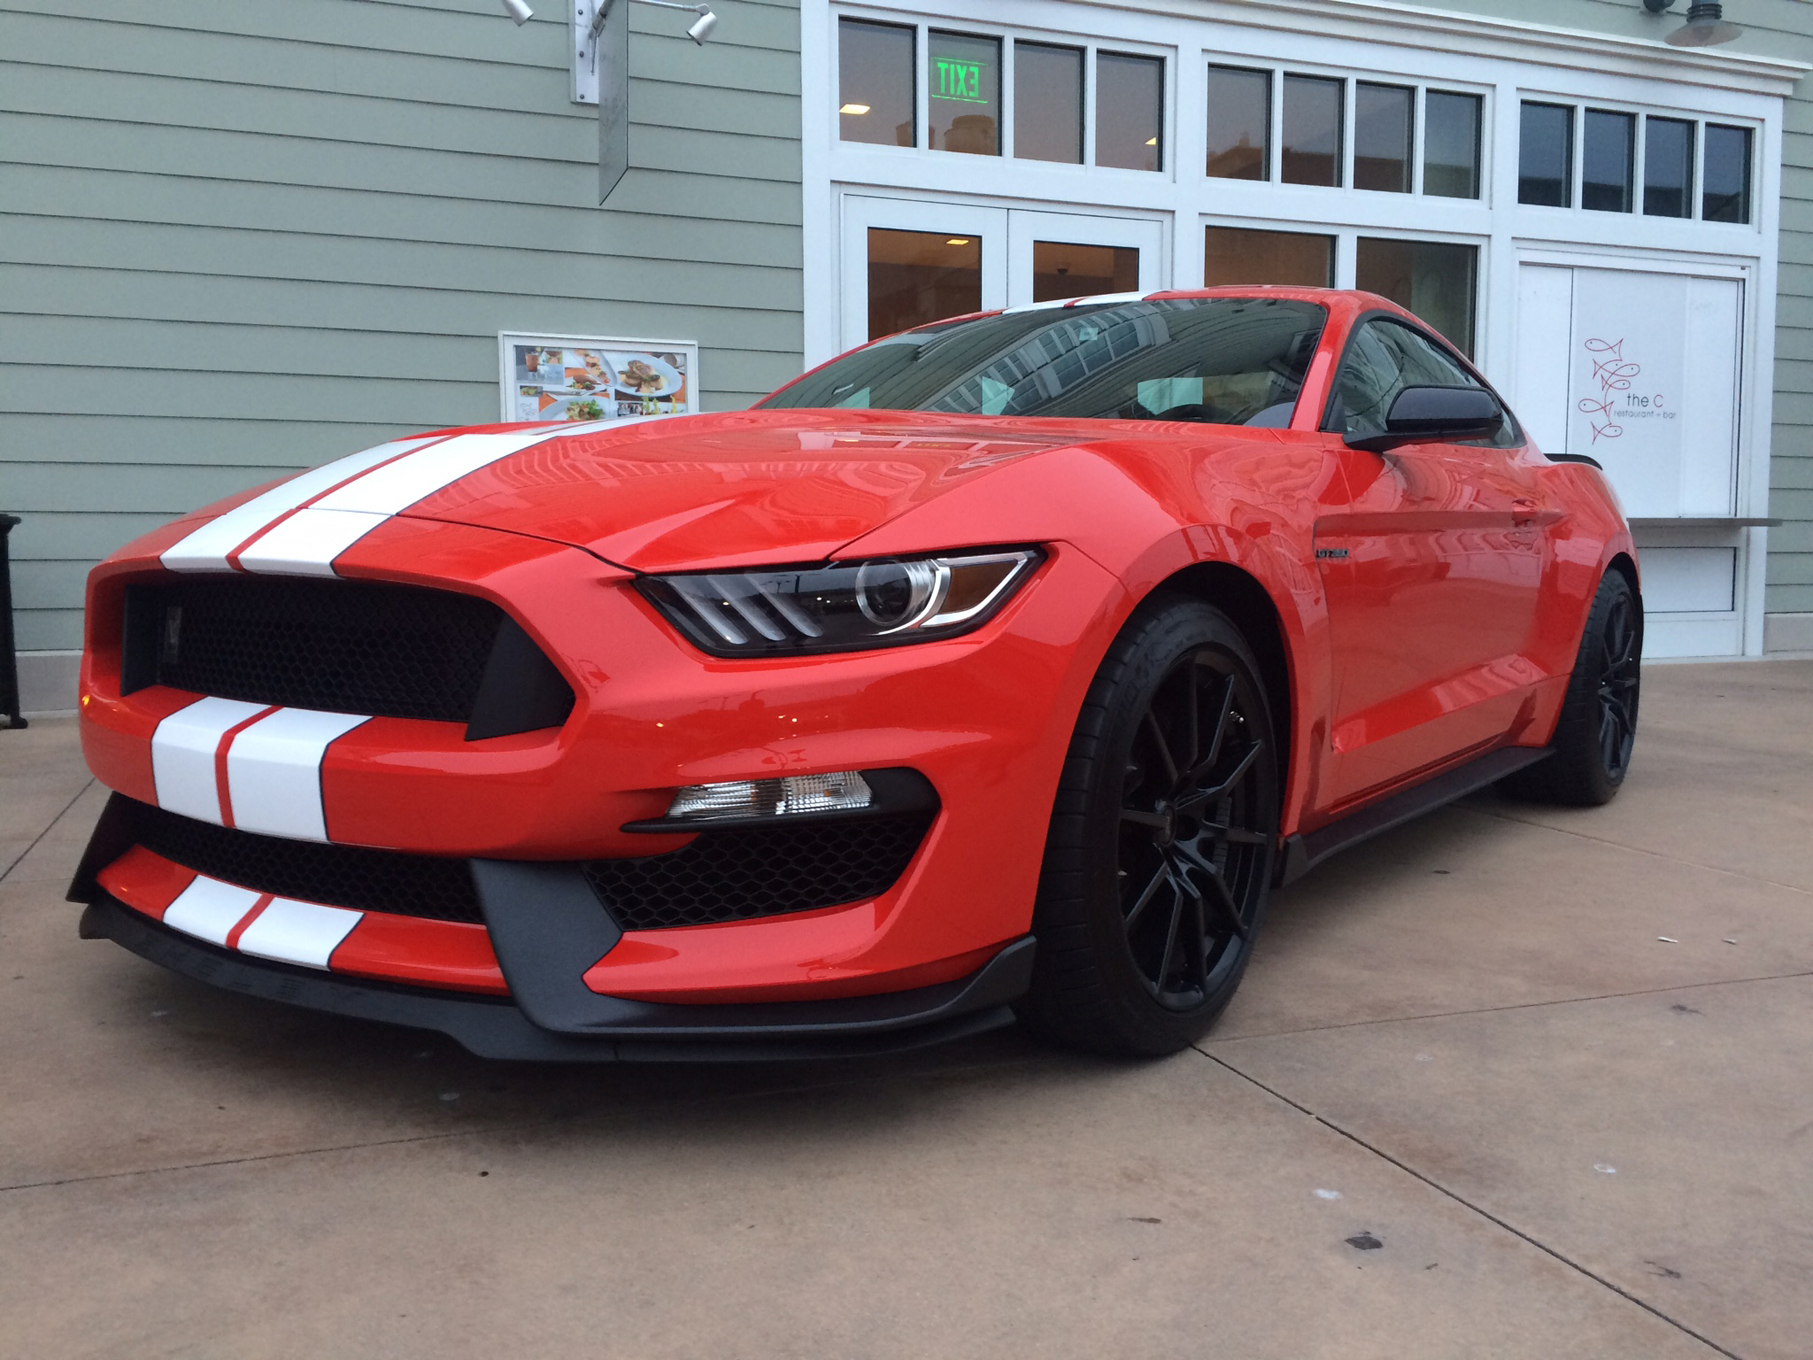 18 Things You Don t Know About The 2015 Shelby Mustang GT350 and